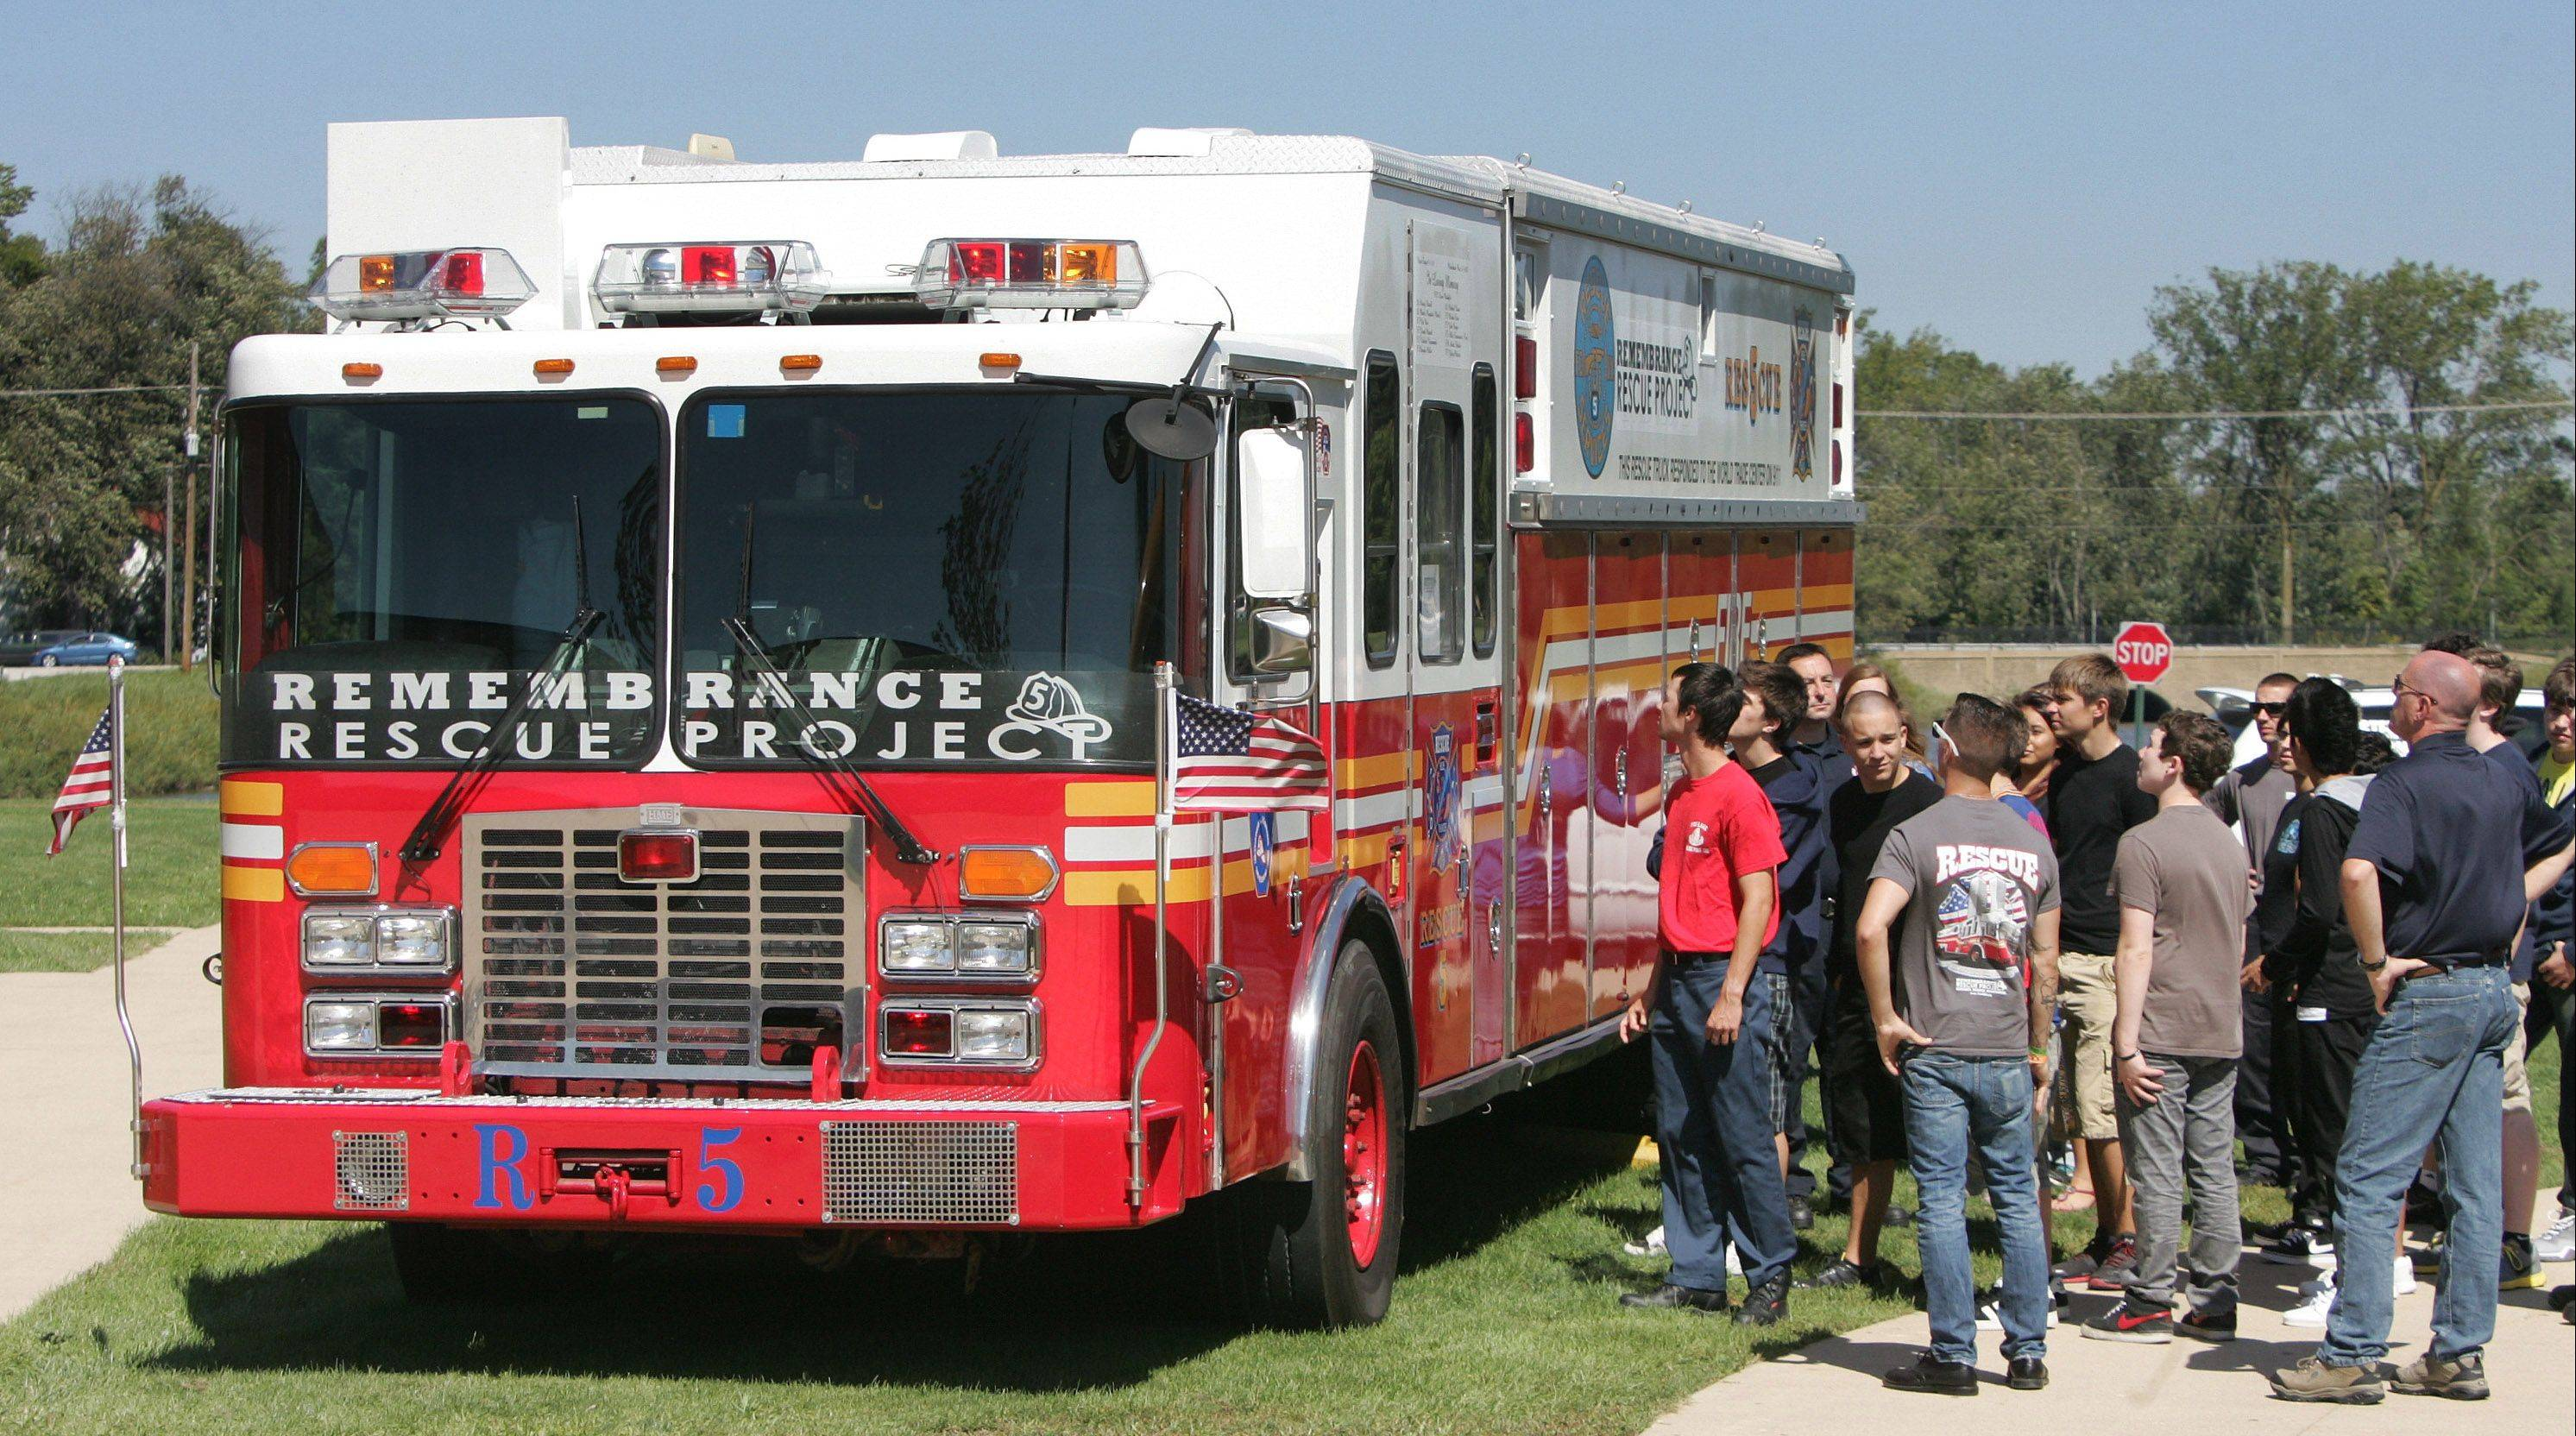 A fire service class looks at New York Fire Department Rescue 5 engine on display during a 9/11 ceremony at the Lake County High Schools Technology Campus in Grayslake. The truck was restored by Remembrance Rescue Project and travels the area to discuss the event.   The fire truck was on the scene in New York on Sept. 11, 2001, when the two World Trade Center towers collapsed. All 11 firefighters with the truck at the time lost their lives.